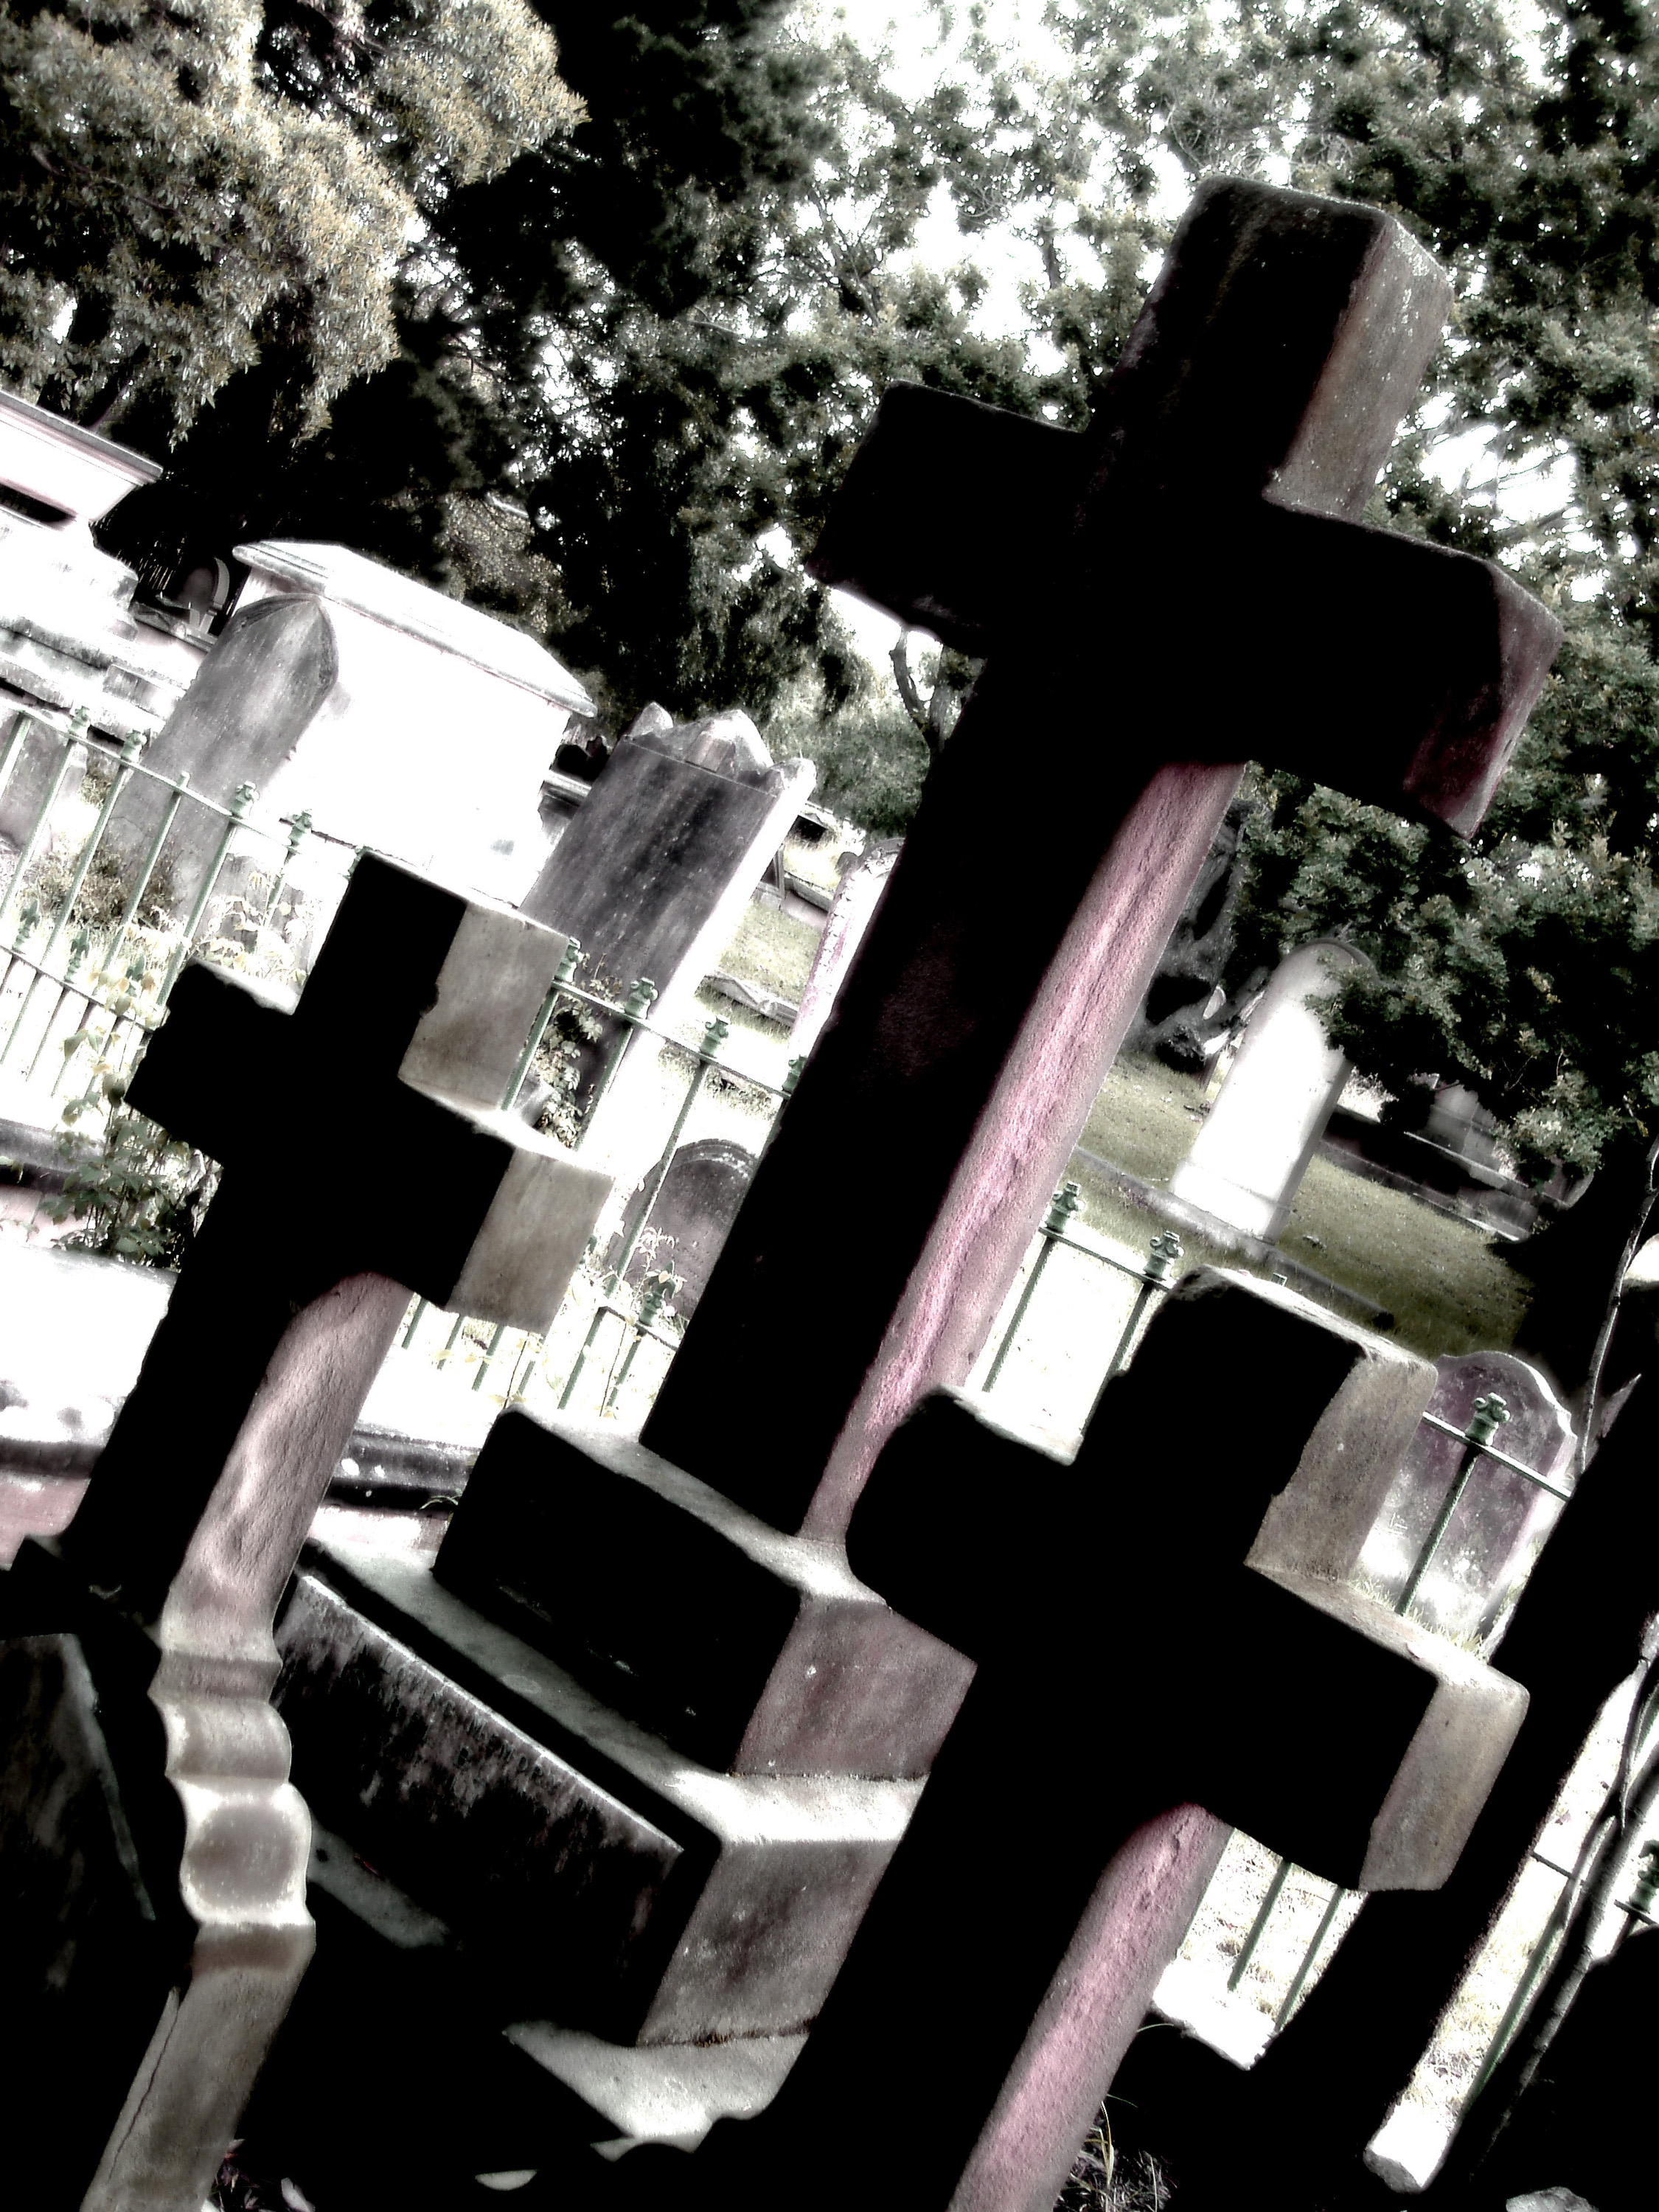 high contrst image of a group of three cruciform headstones